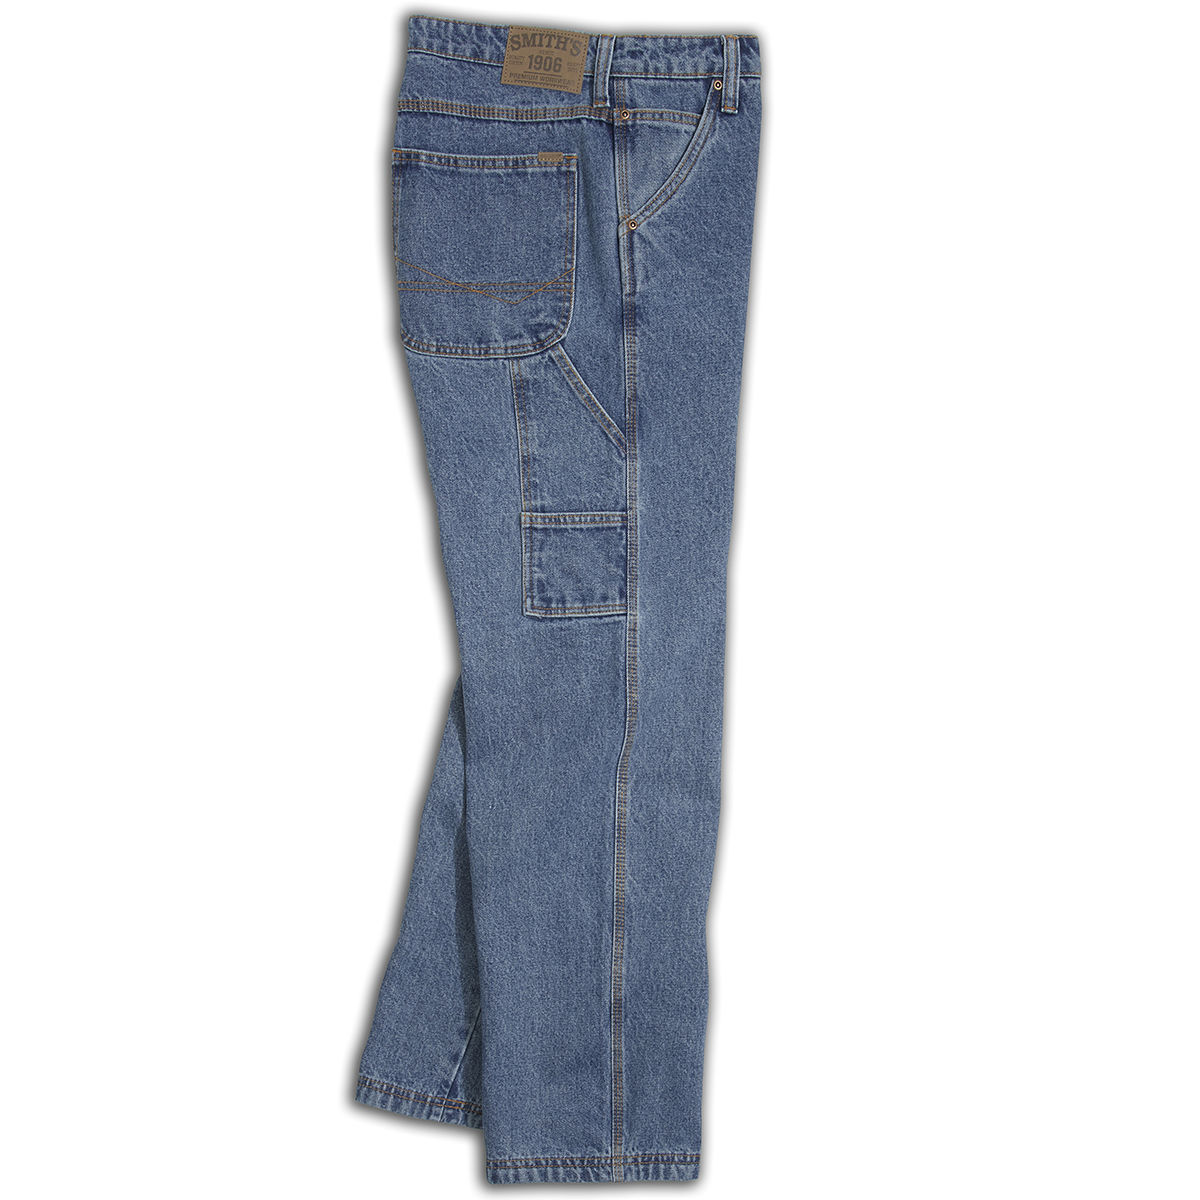 Smiths Unlined Mens Carpenter Jean